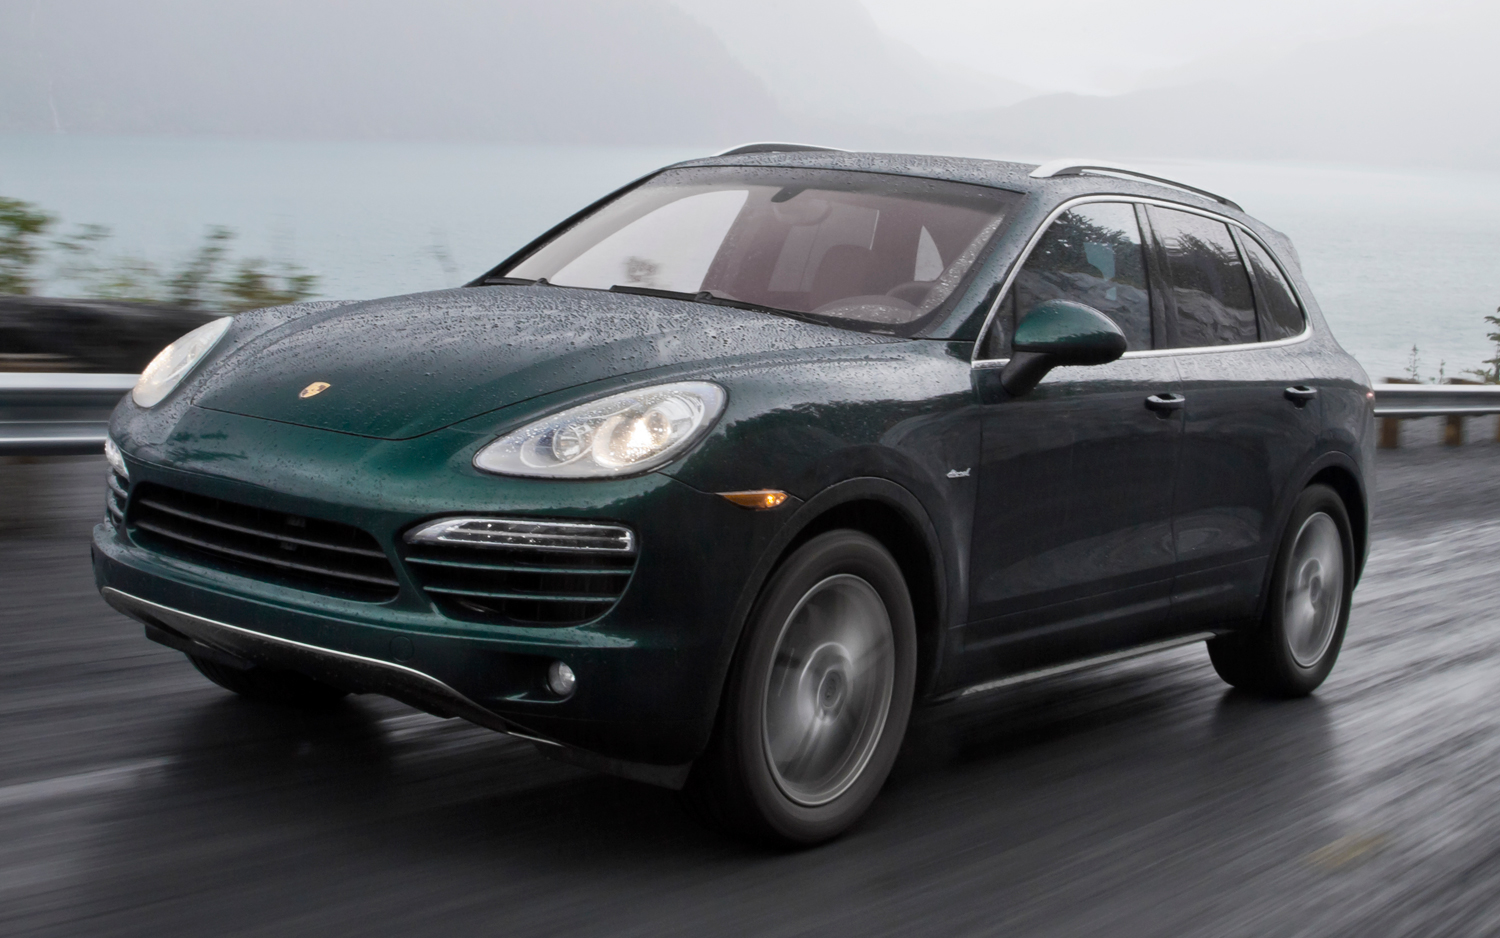 2017 Porsche Cayenne Diesel photo - 3